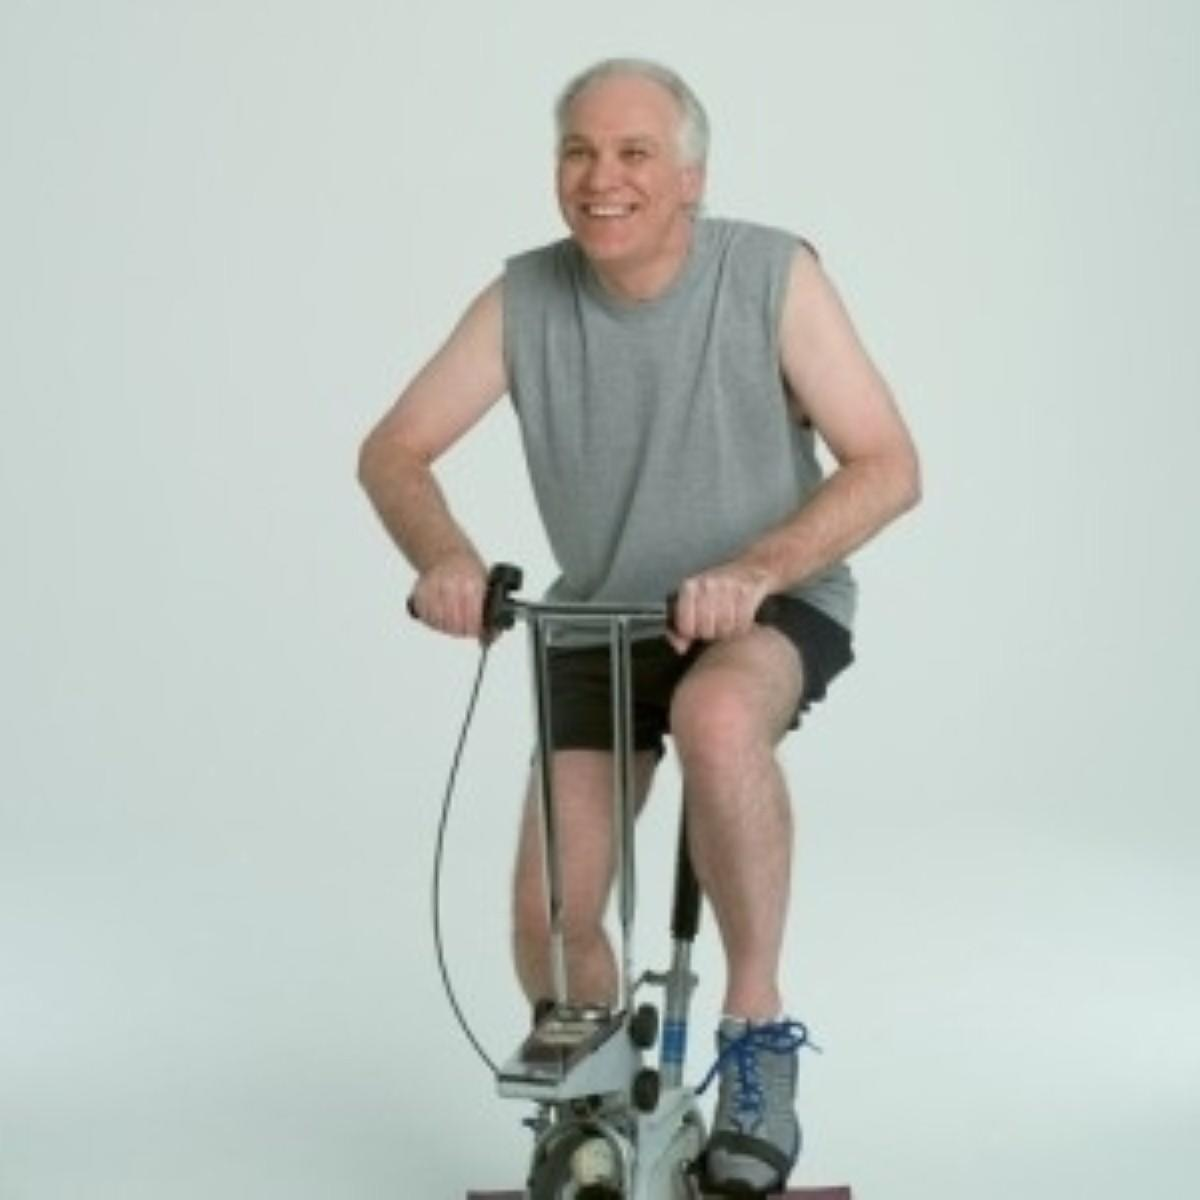 Exercise may prevent degenerative diseases in older age